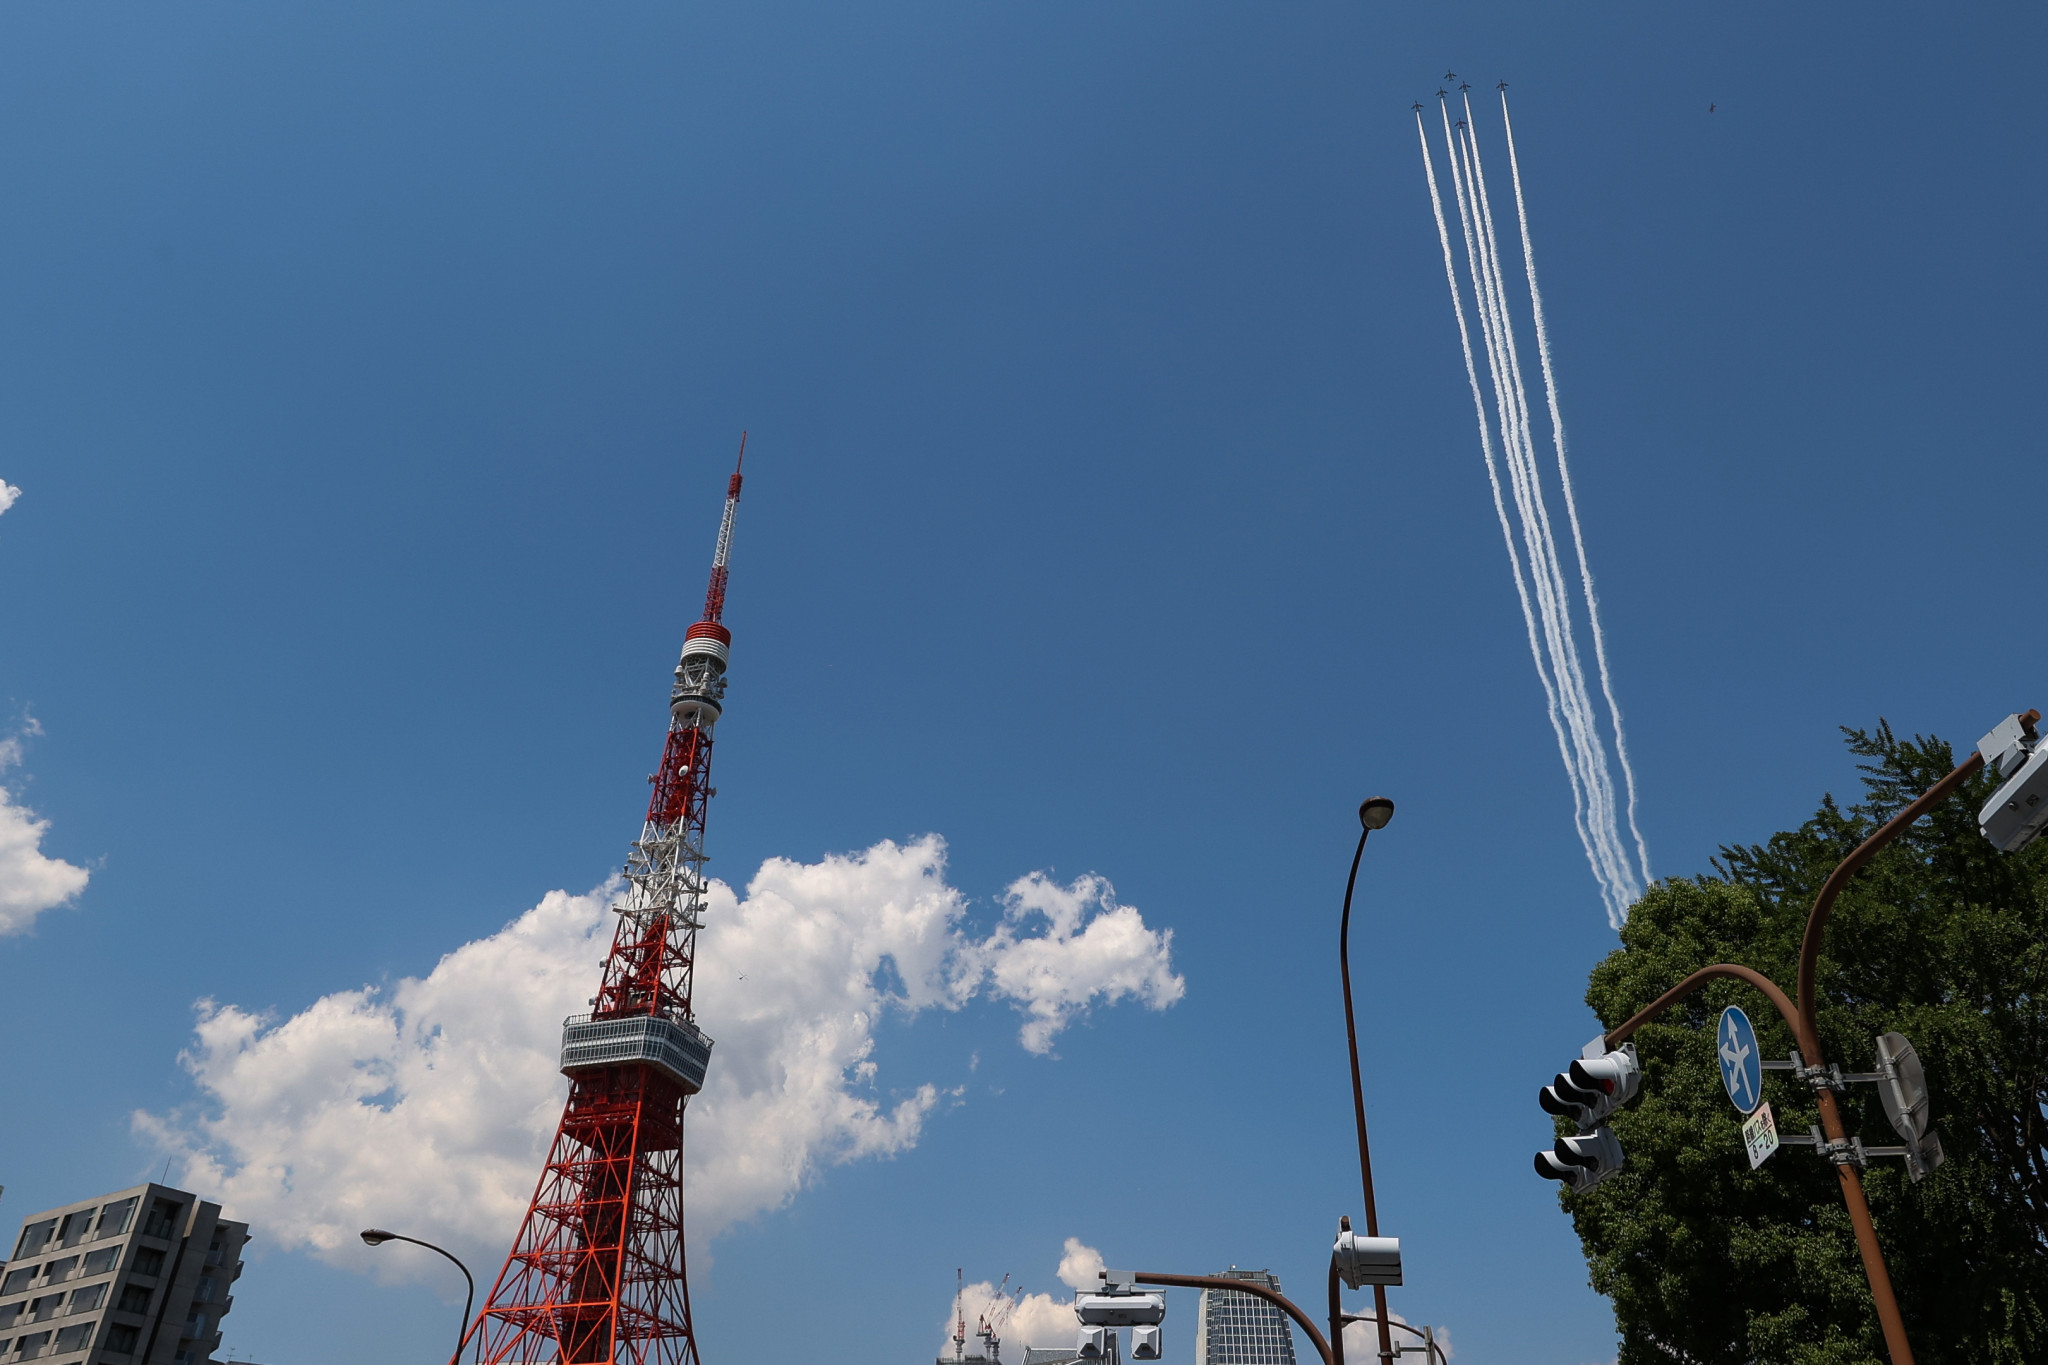 Blue Impulse set for dramatic flypast on opening day of Tokyo 2020 Olympics